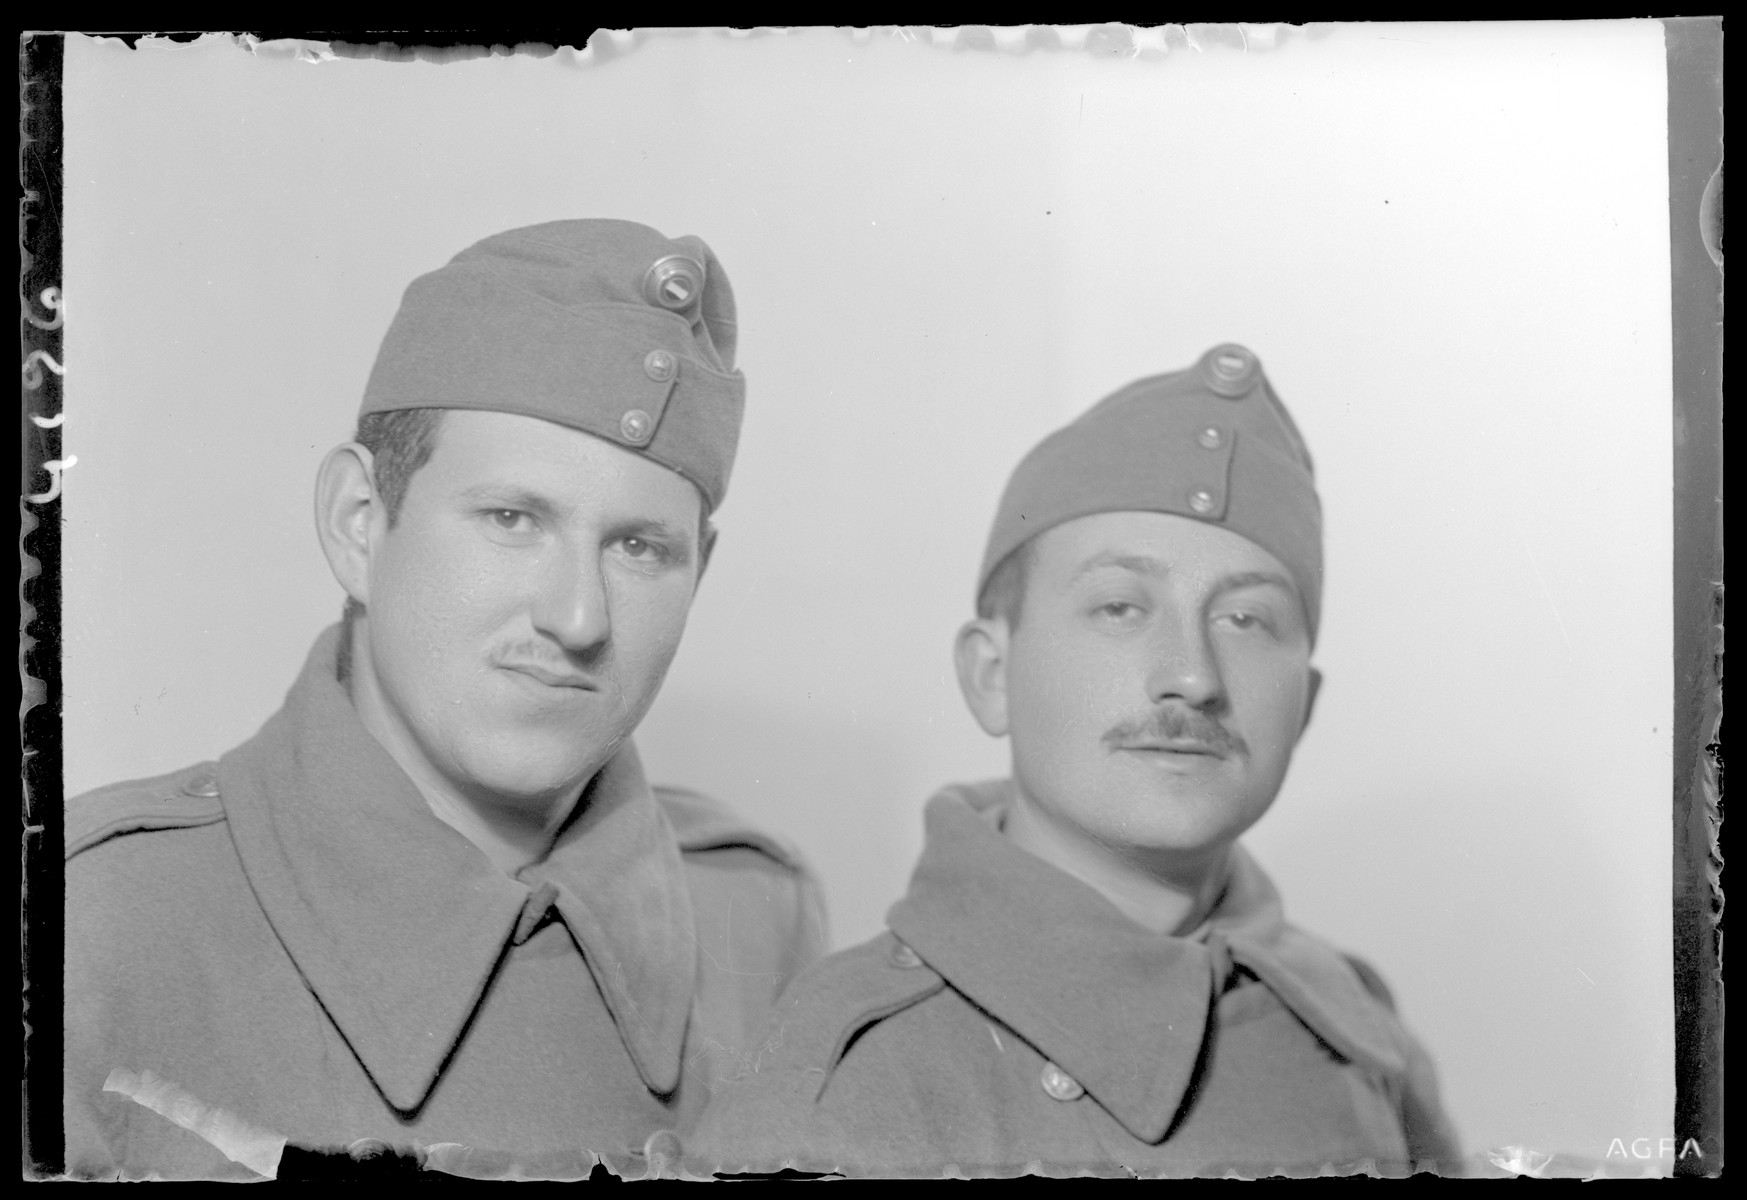 Studio portrait of Bela Fischer in a military uniform with another soldier.